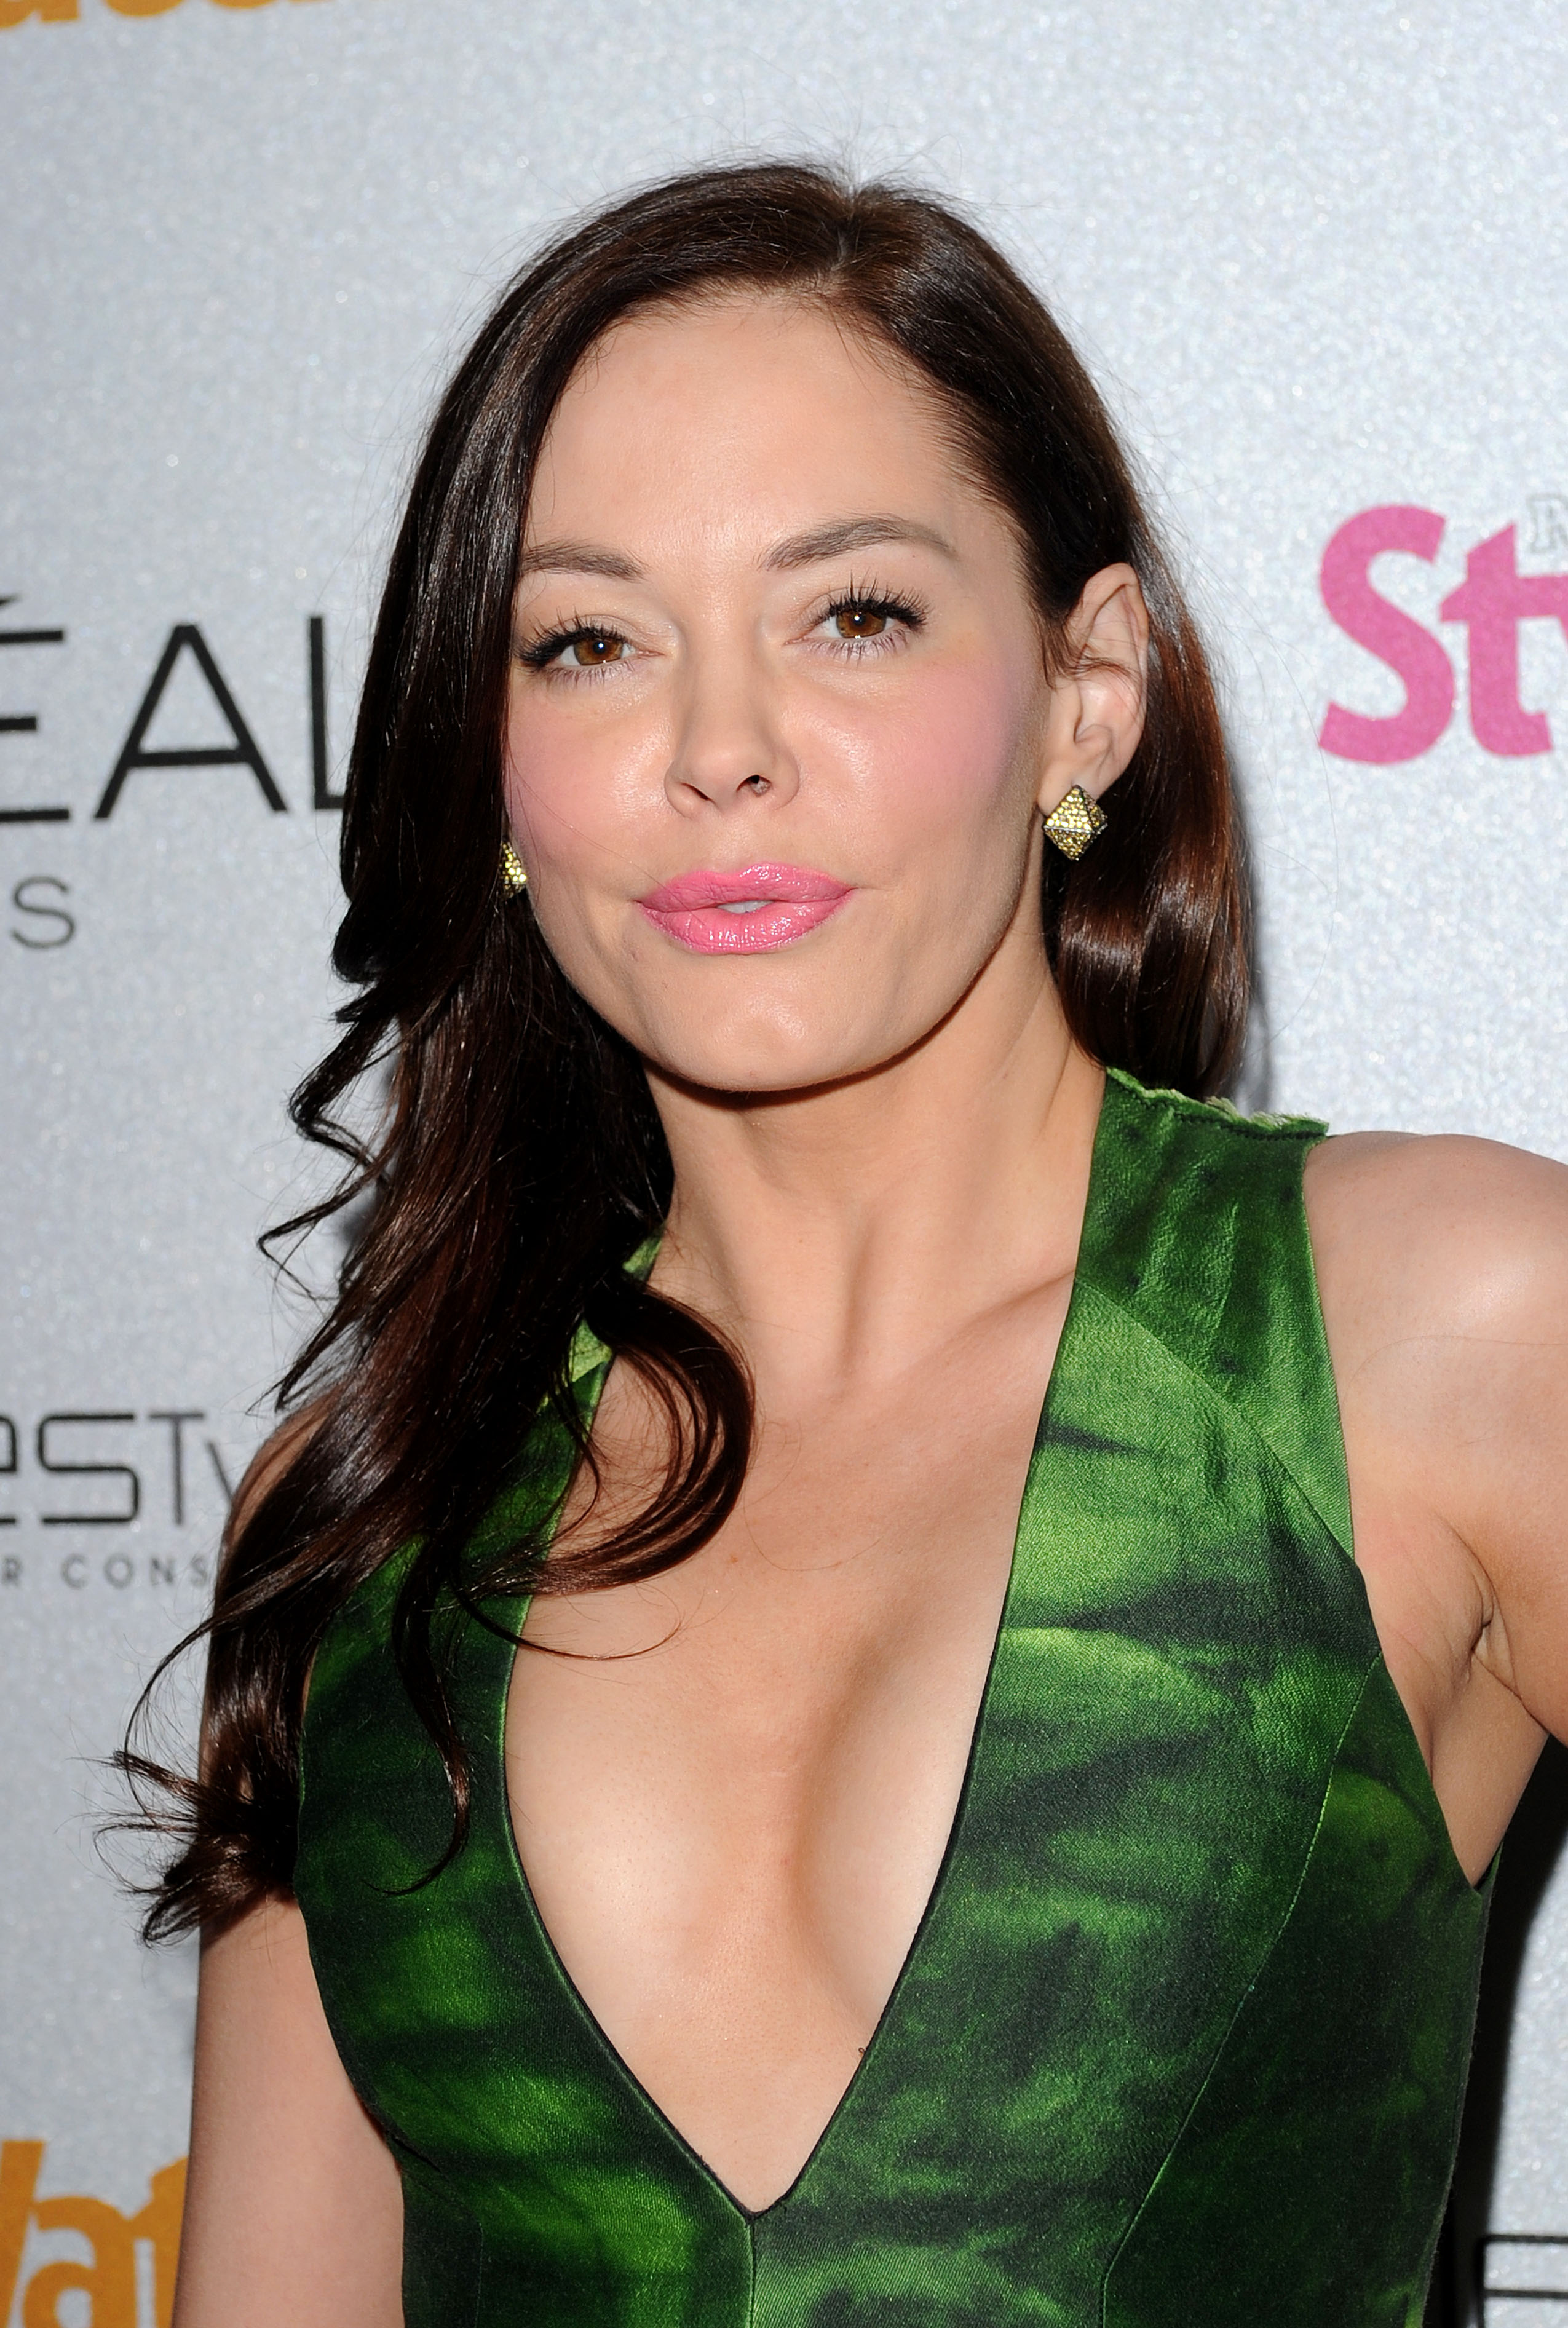 751953263_Rose_McGowan_People_StyleWatch_A_Night_of_Red_Carpet_Style_in_LA_January_27_2011_05_122_375lo.jpg